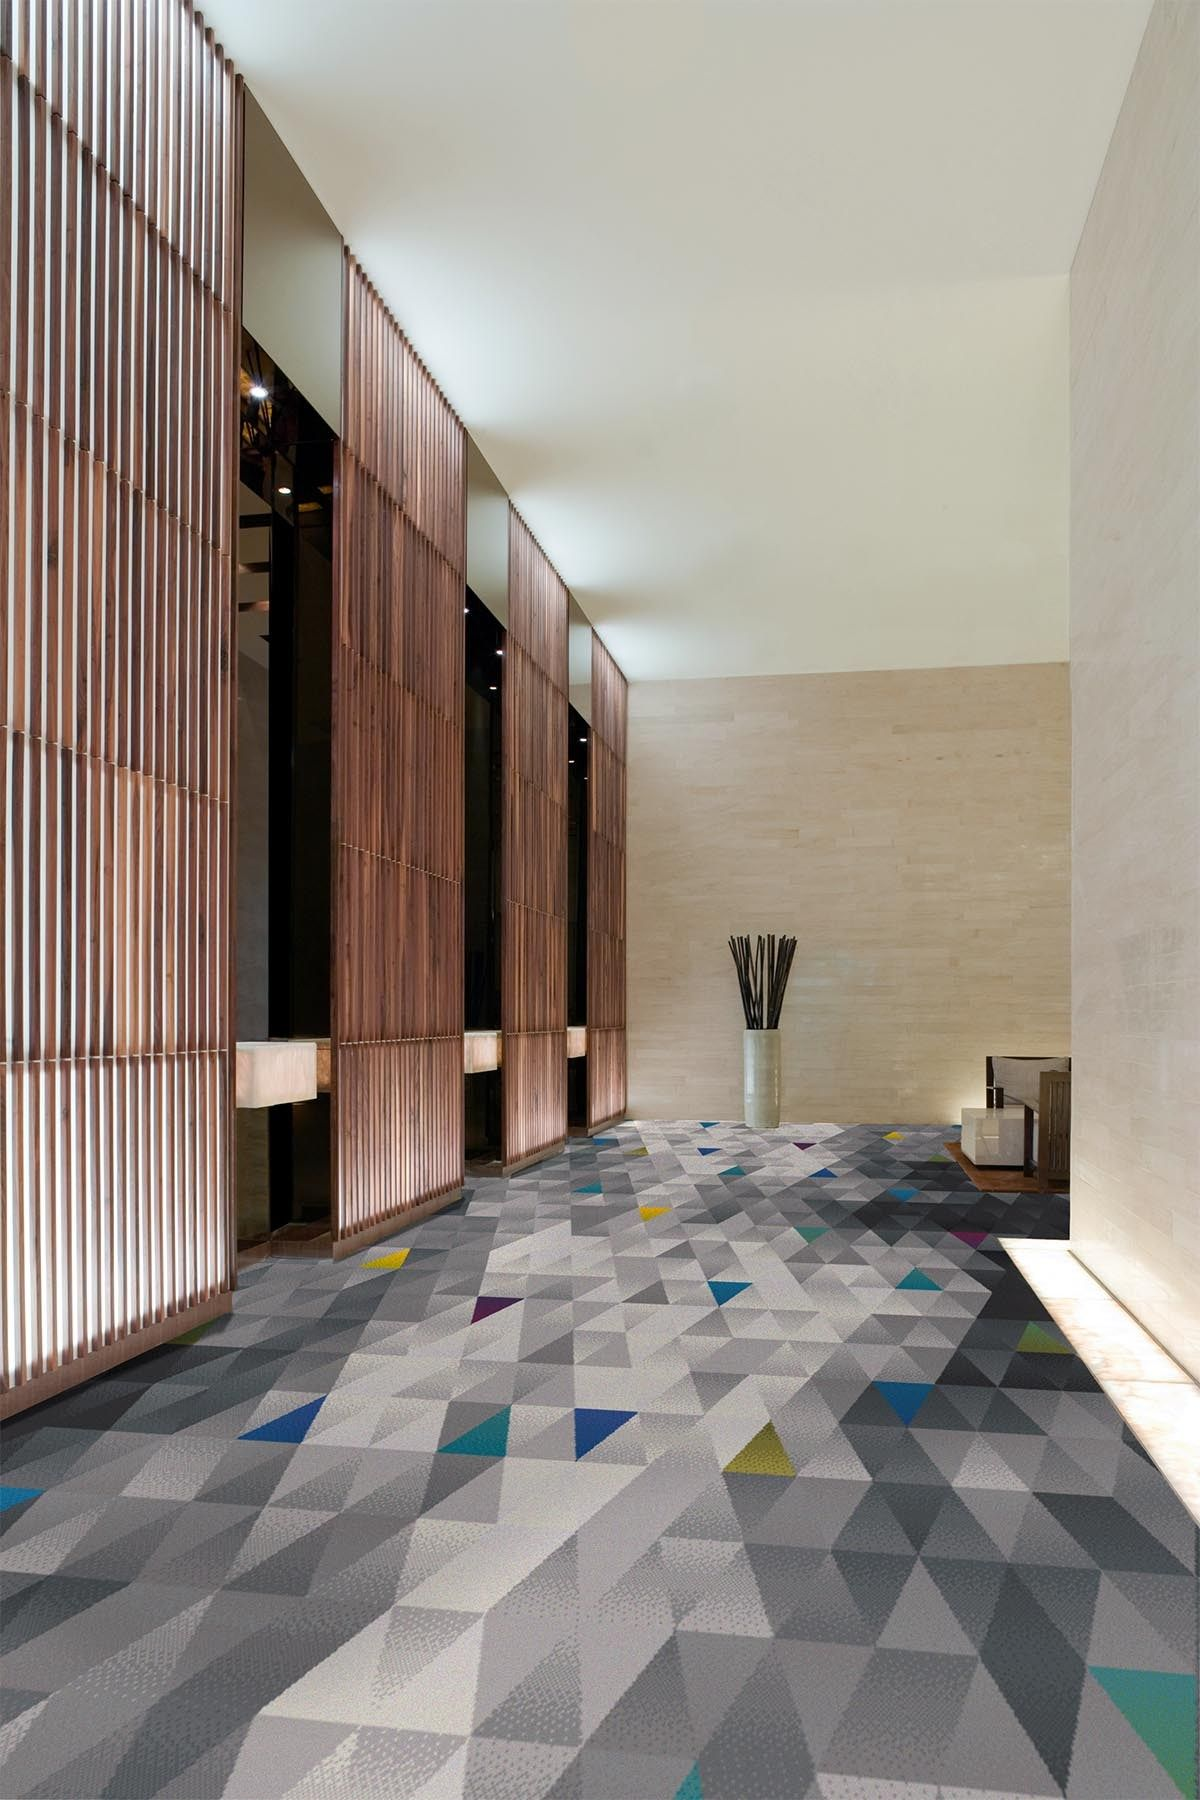 Ceramic Tile Herringbone Pattern Hotel Carpet Floor Design